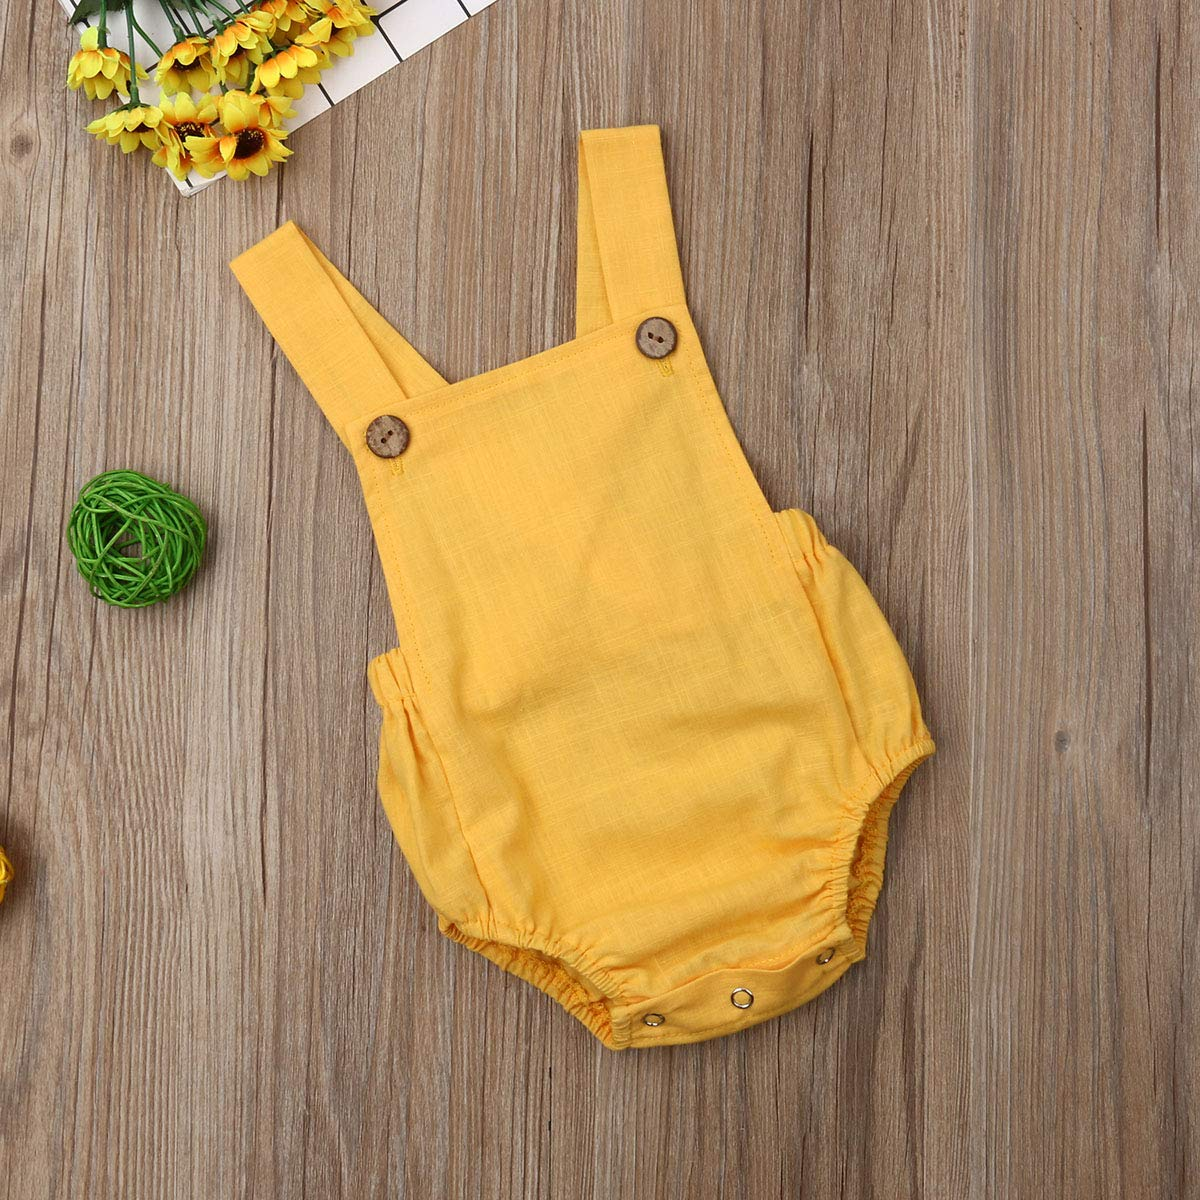 woshilaocai Baby Boy Girl Romper,Summer Baby One-Piece Backless Sling Jumpsuit Sunsuit Clothes